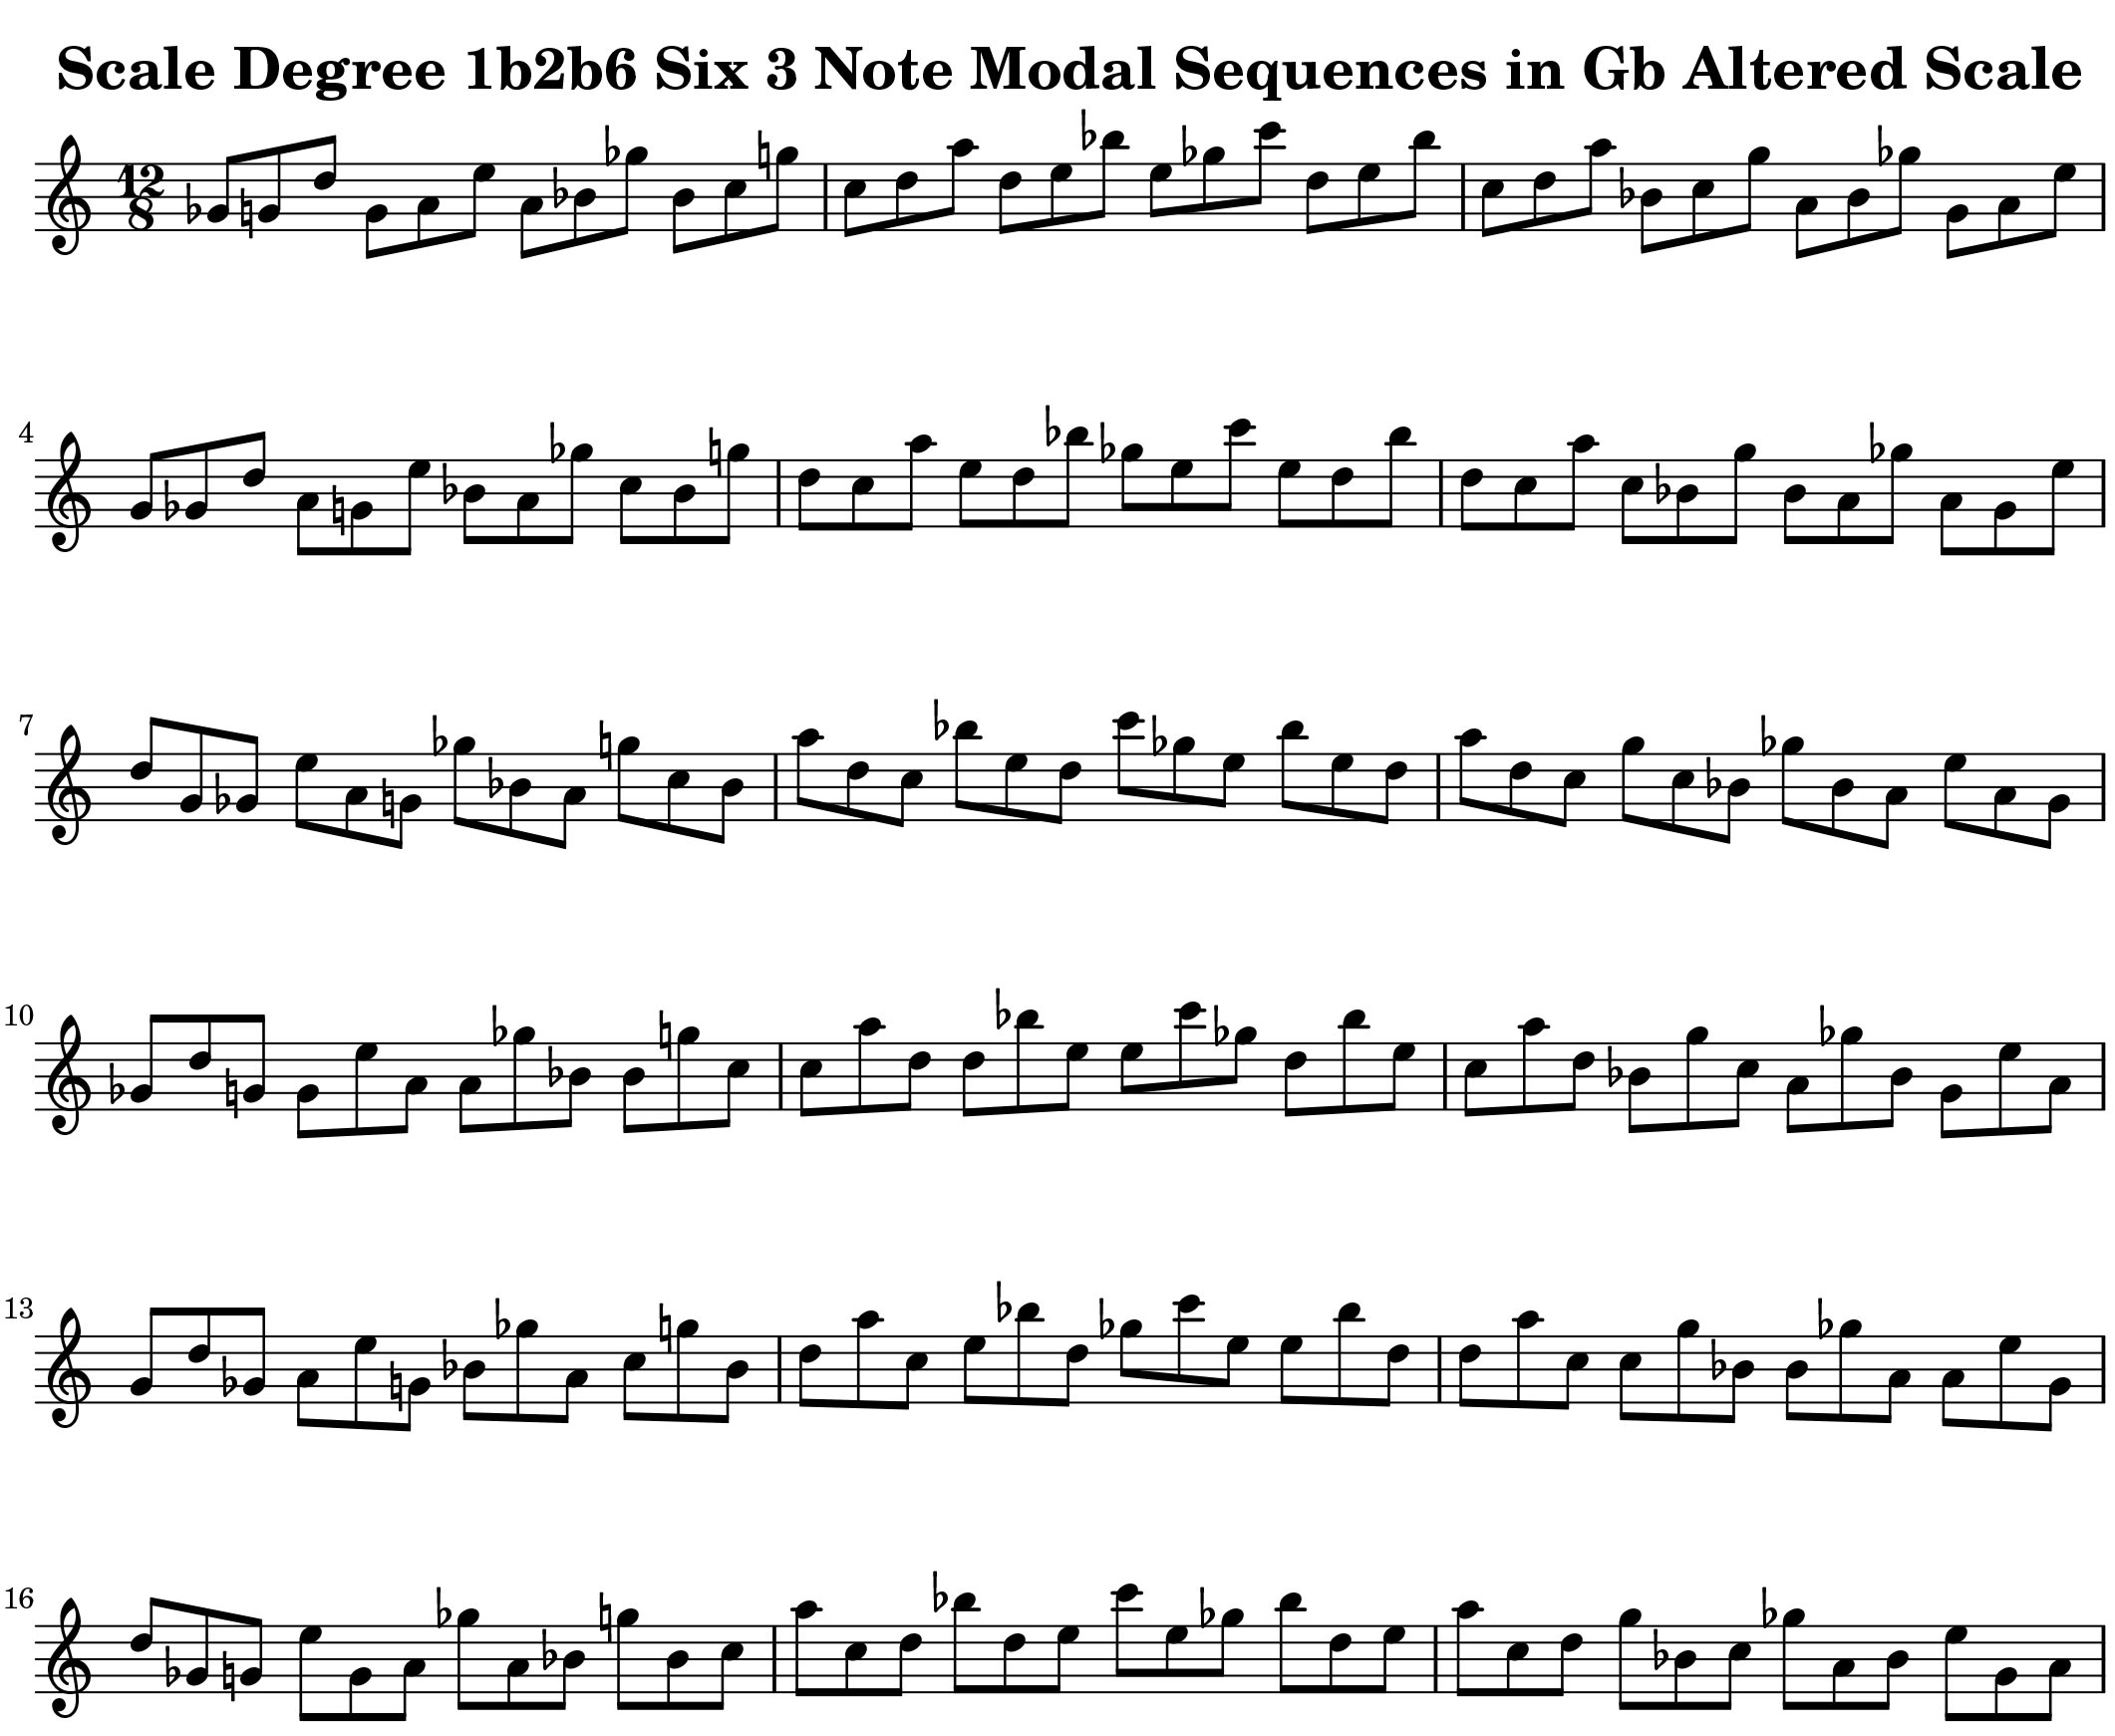 Gb Altered Scale Modal Sequencing 3 Note Group 2 for all instrumentalist by Bruce Arnold for Muse Eek Publishing Company